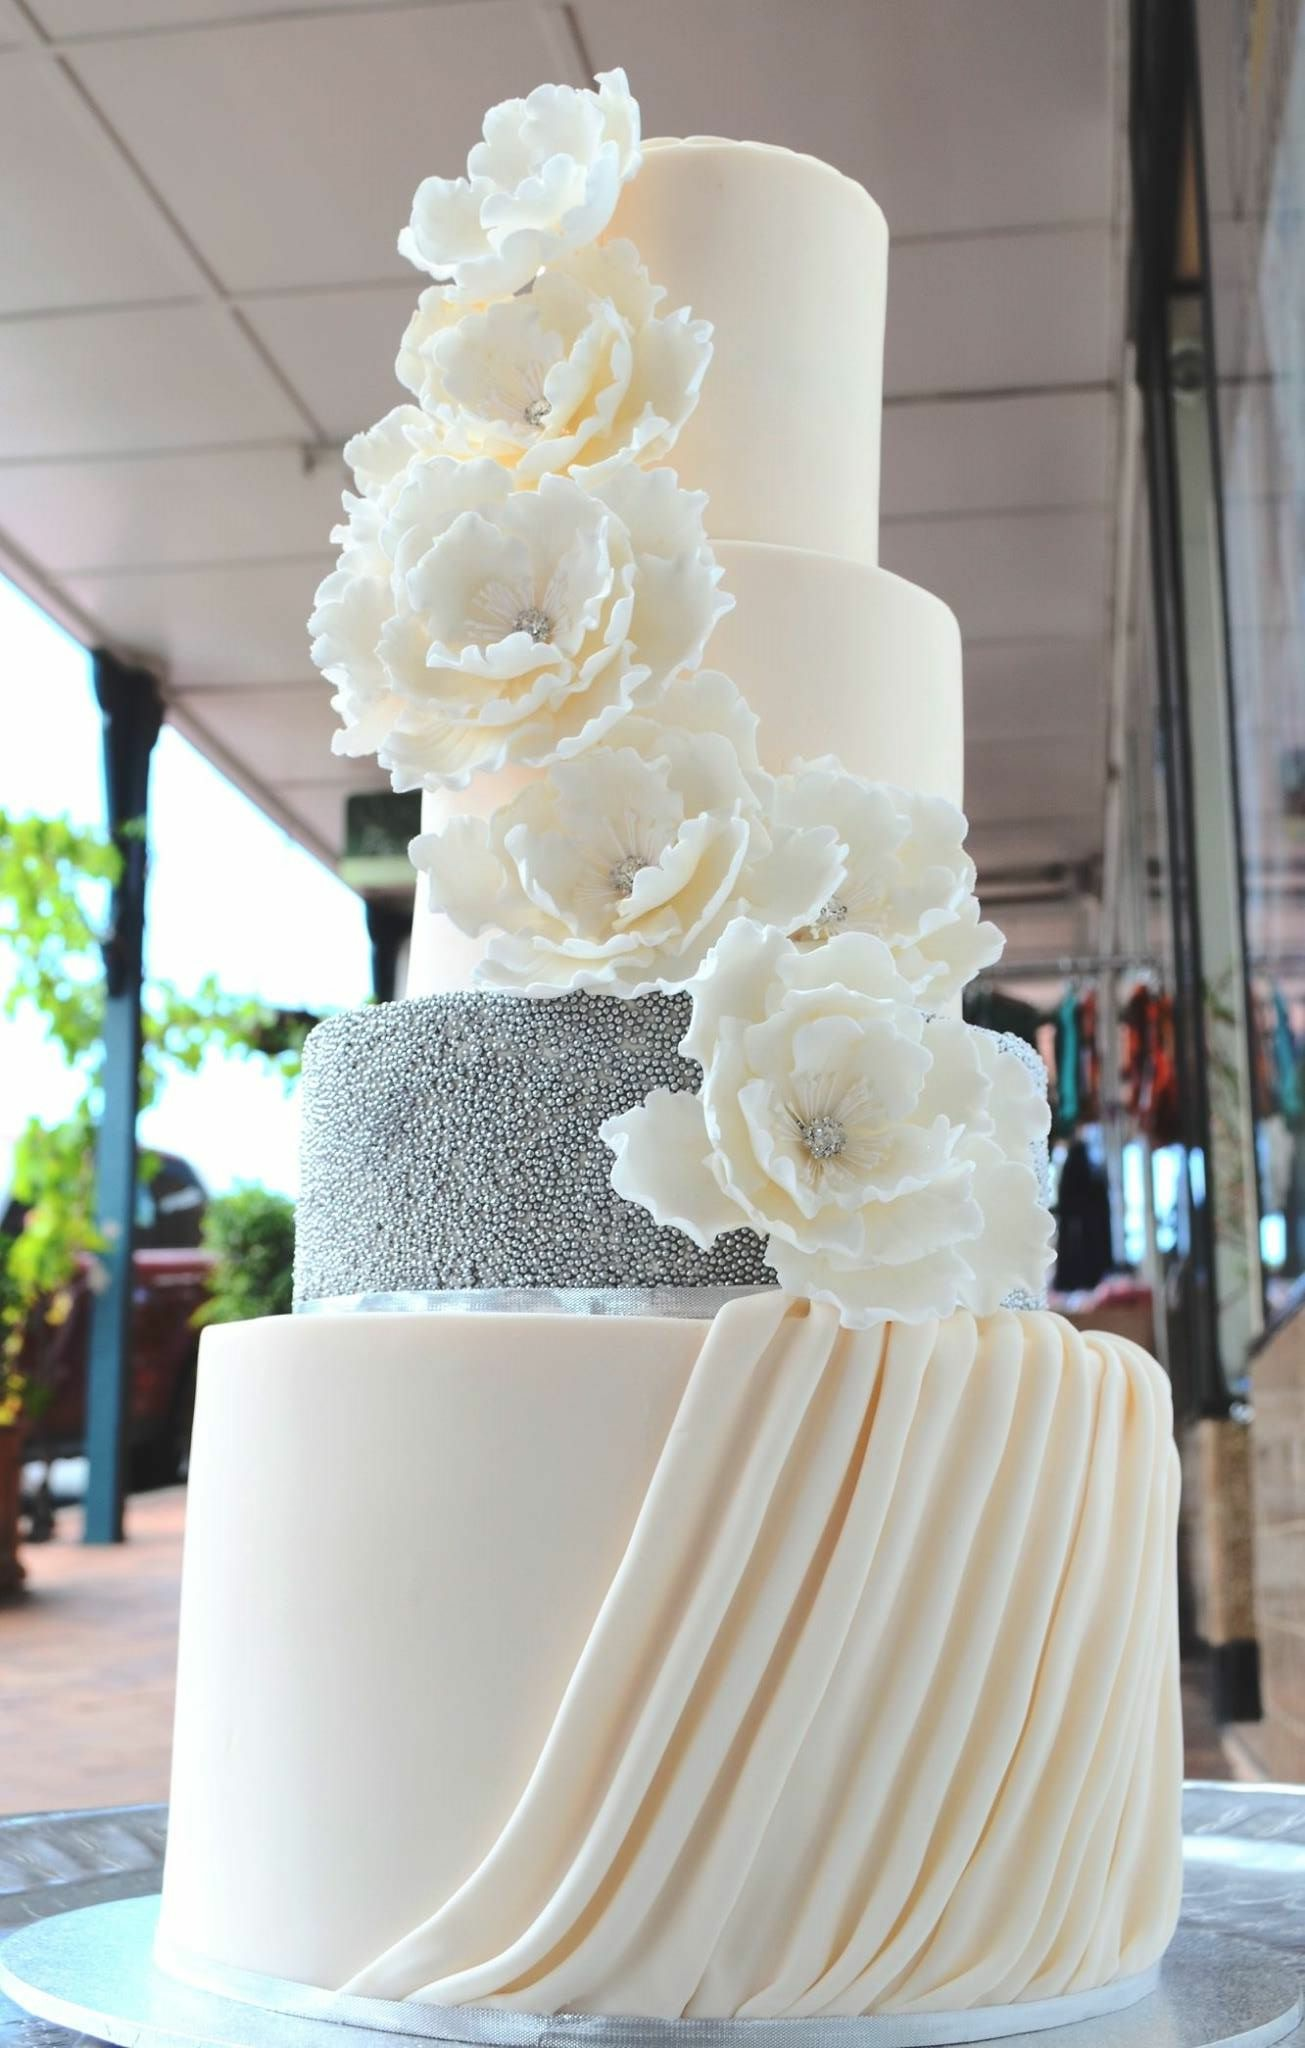 5 tier fondant wedding cake by Vanilla Pod Brisbane.JPG